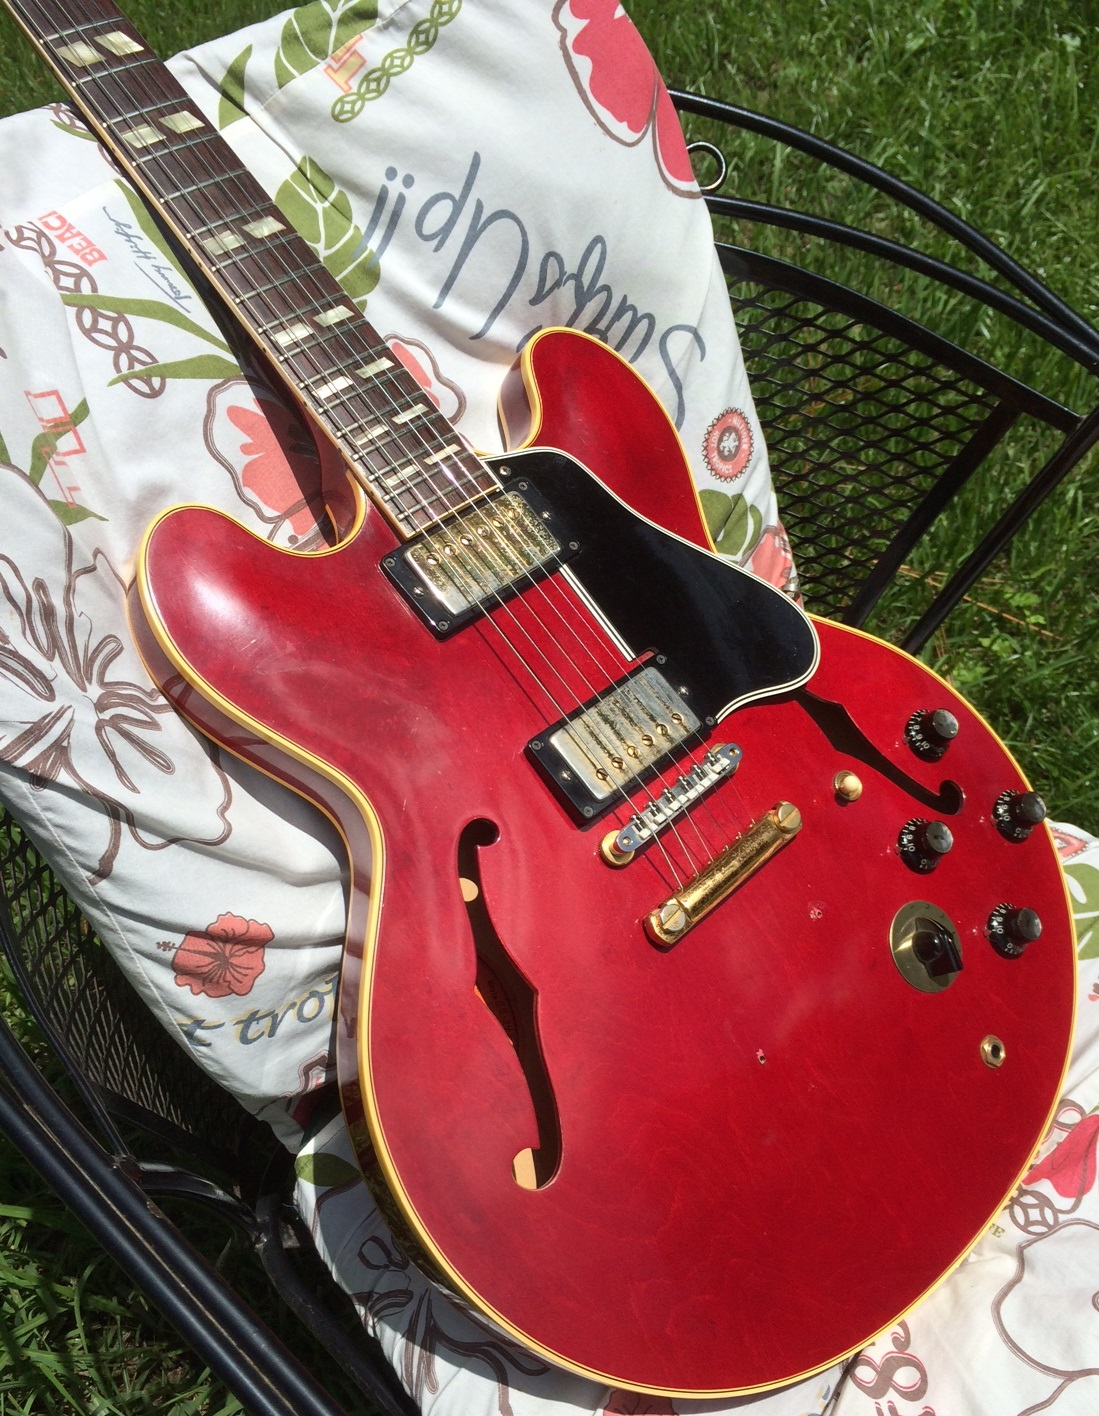 gibson es 355 upgrades the gear page. Black Bedroom Furniture Sets. Home Design Ideas